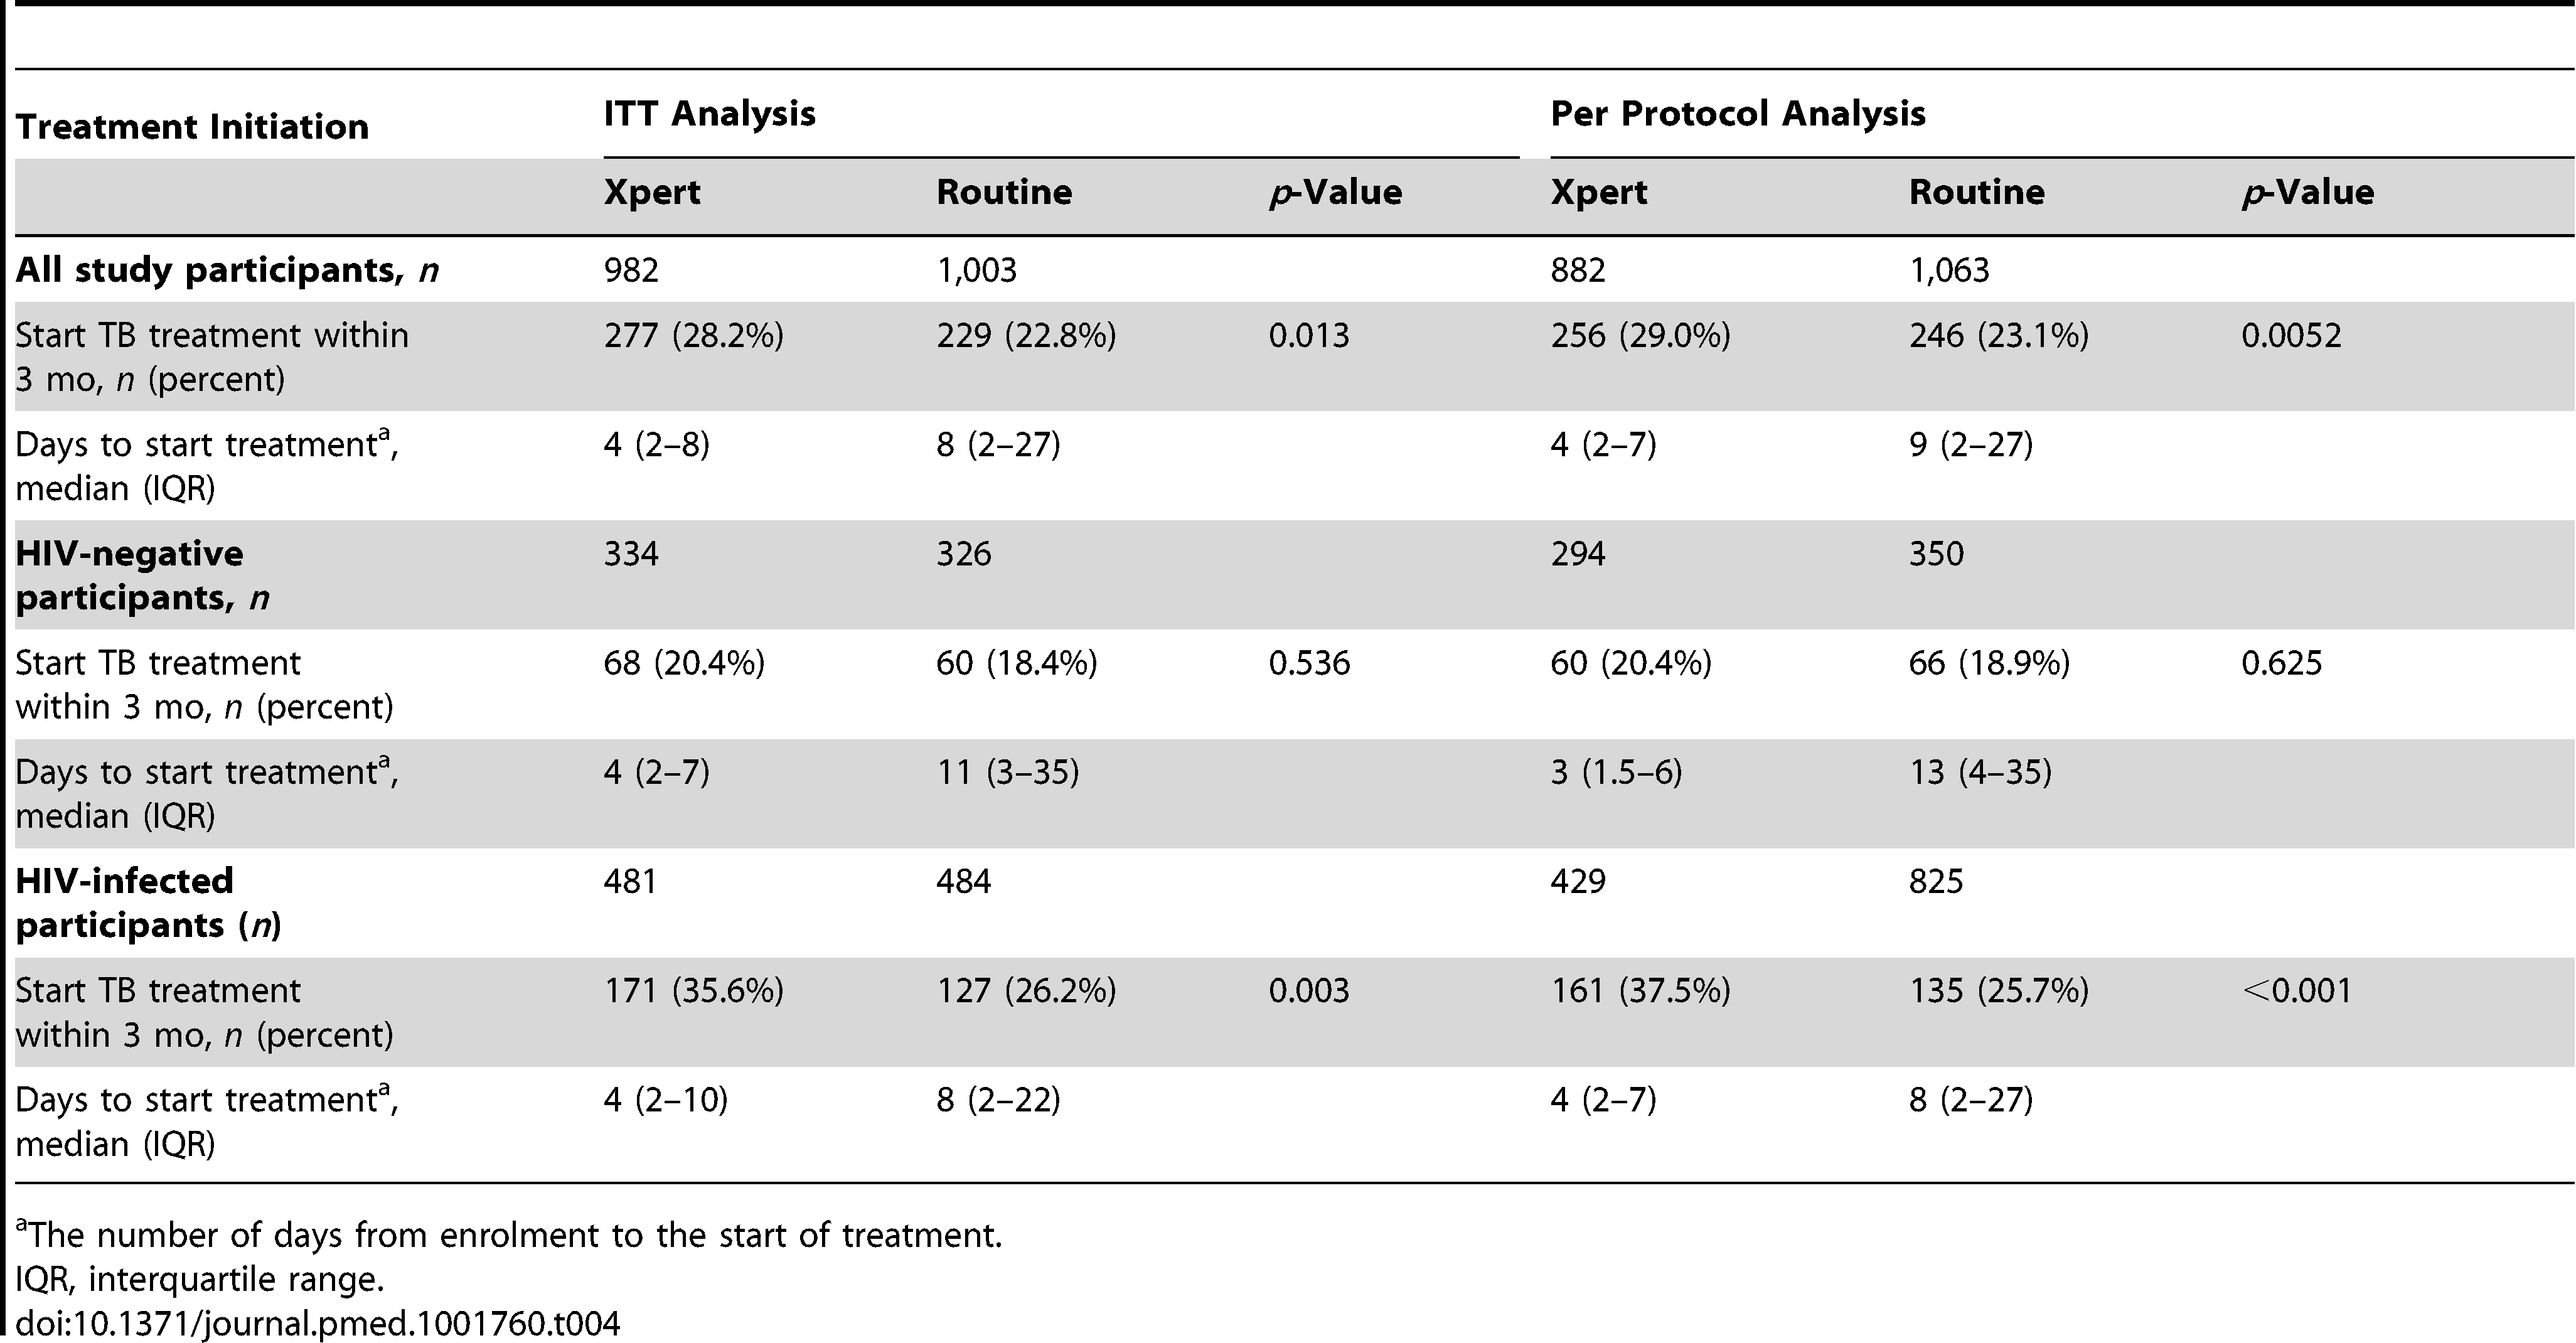 TB treatment initiation, overall and by HIV status, in the Xpert and routine arms for both the ITT and per protocol analyses.